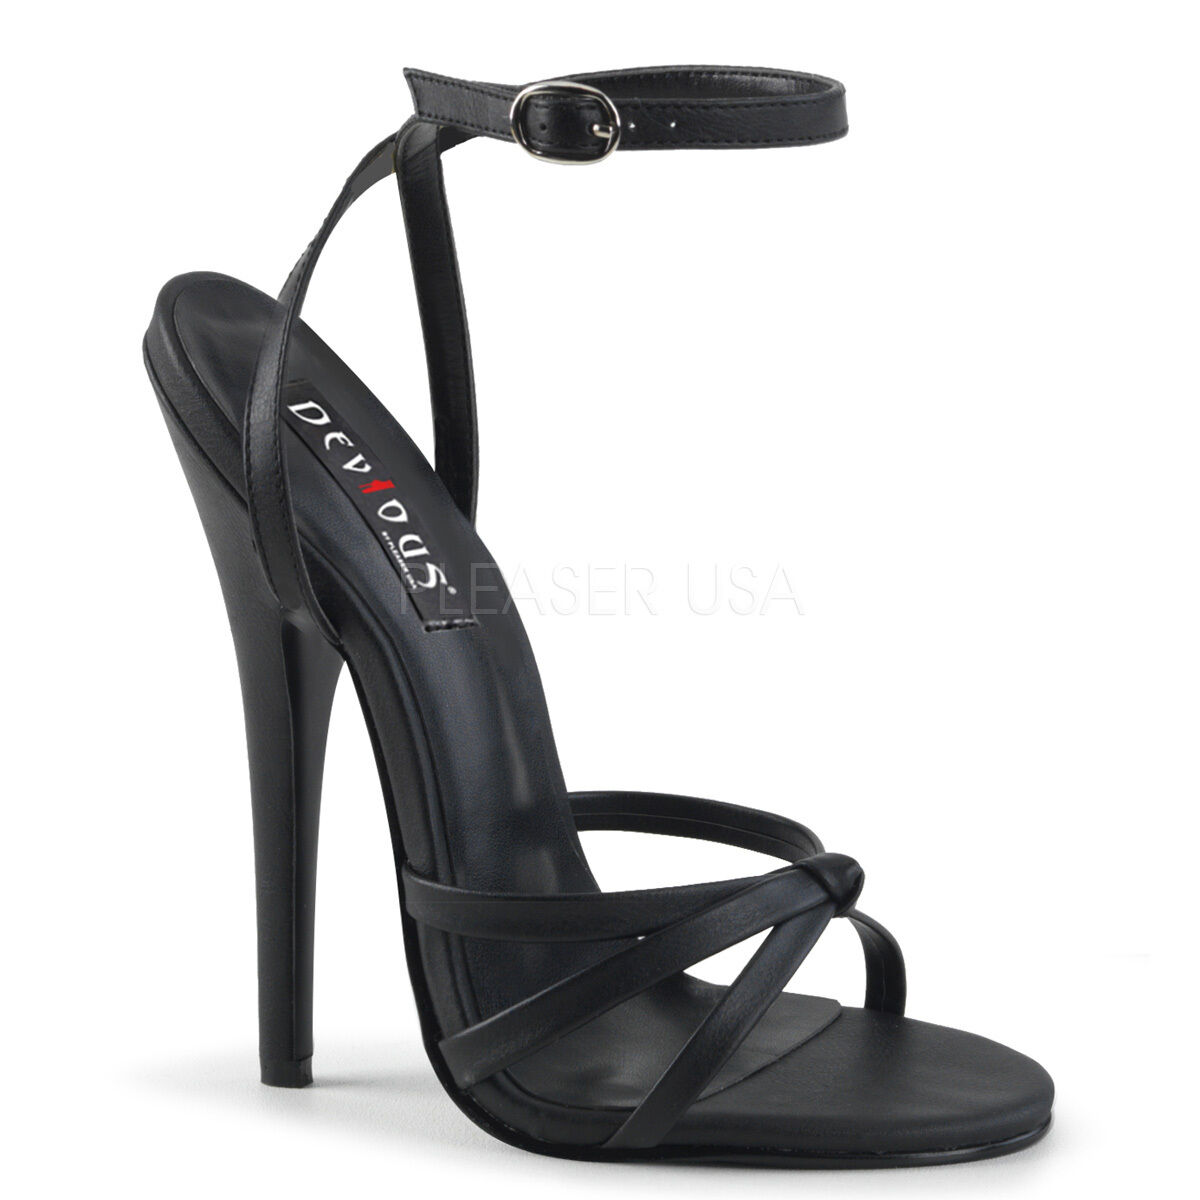 PLEASER DEVIOUS DOMINA-108 BLACK PU STILETTO HEEL ANKLE STRAP SANDALS